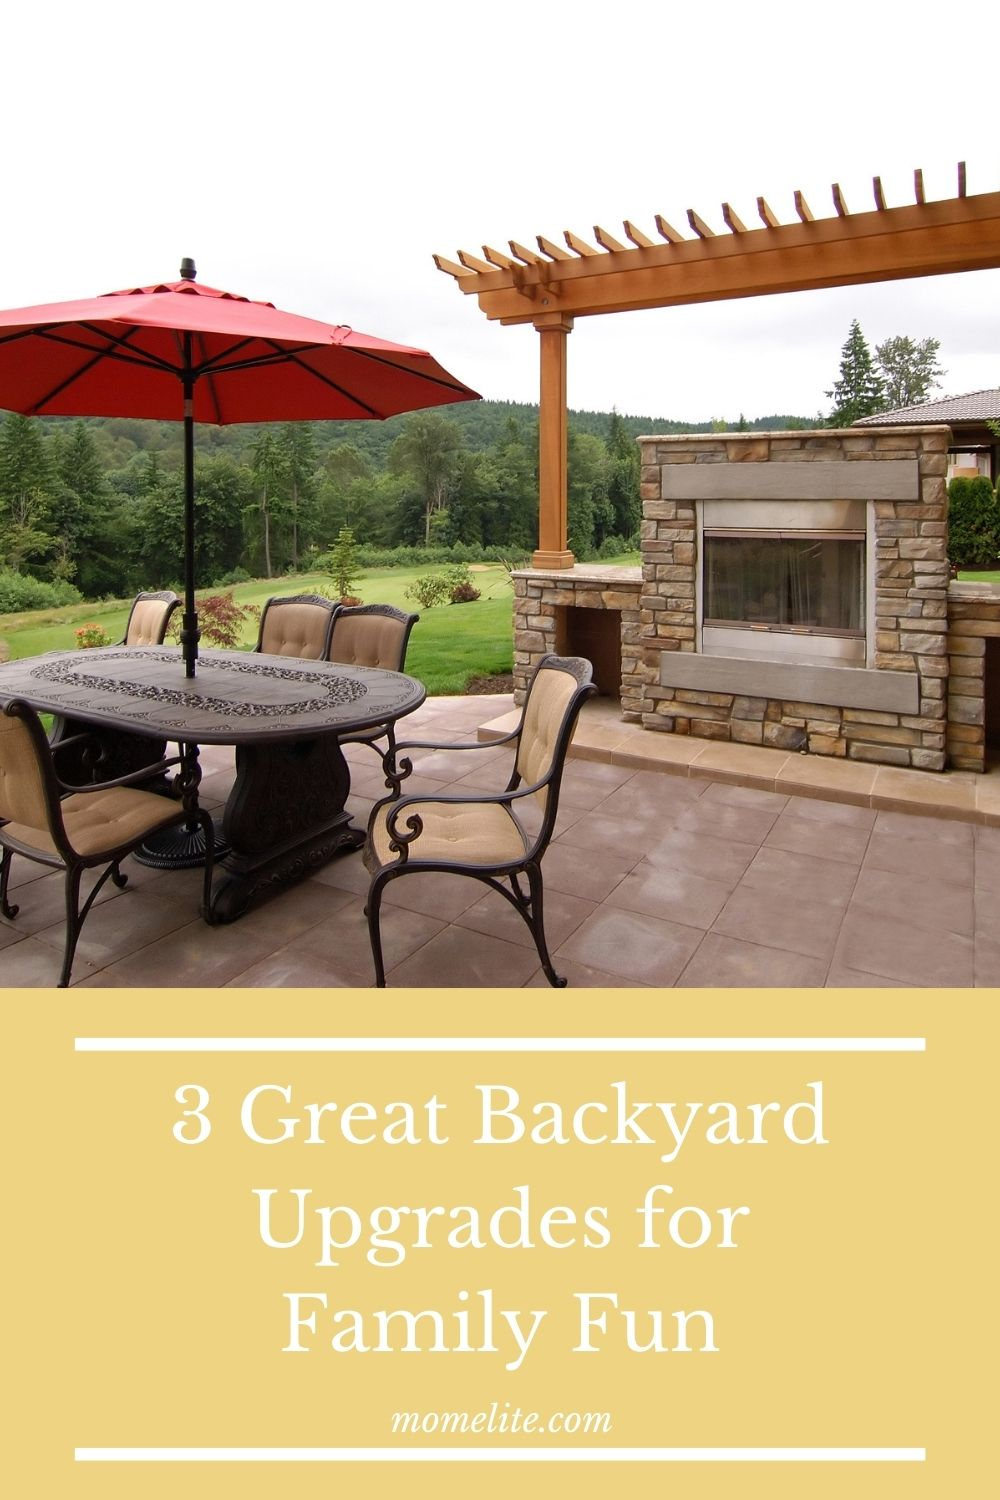 3 Great Backyard Upgrades for Family Fun